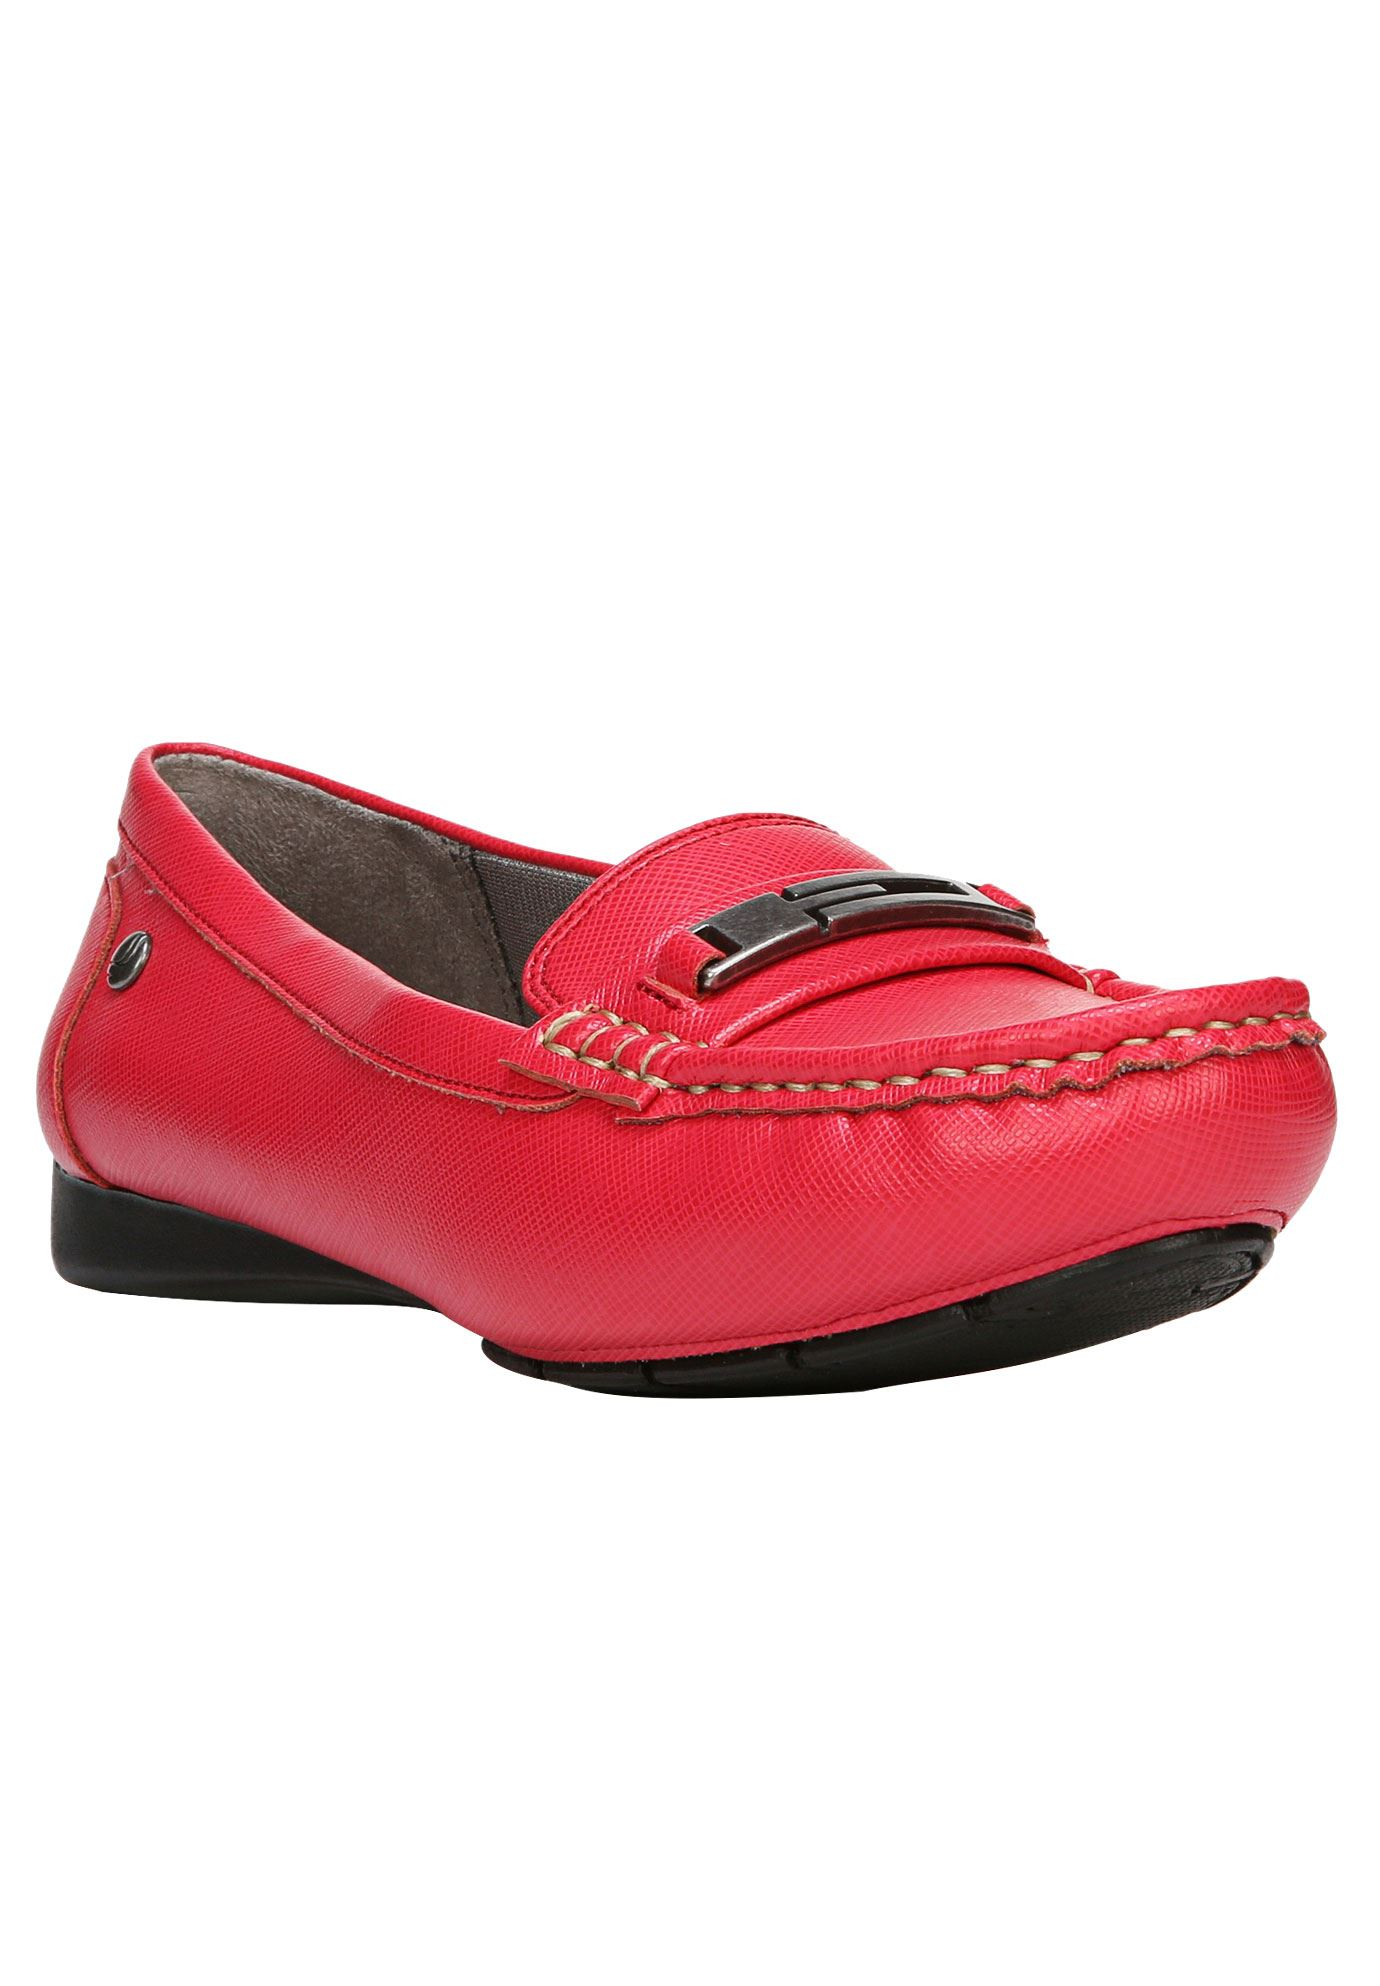 Viva Loafers by LifeStride®,